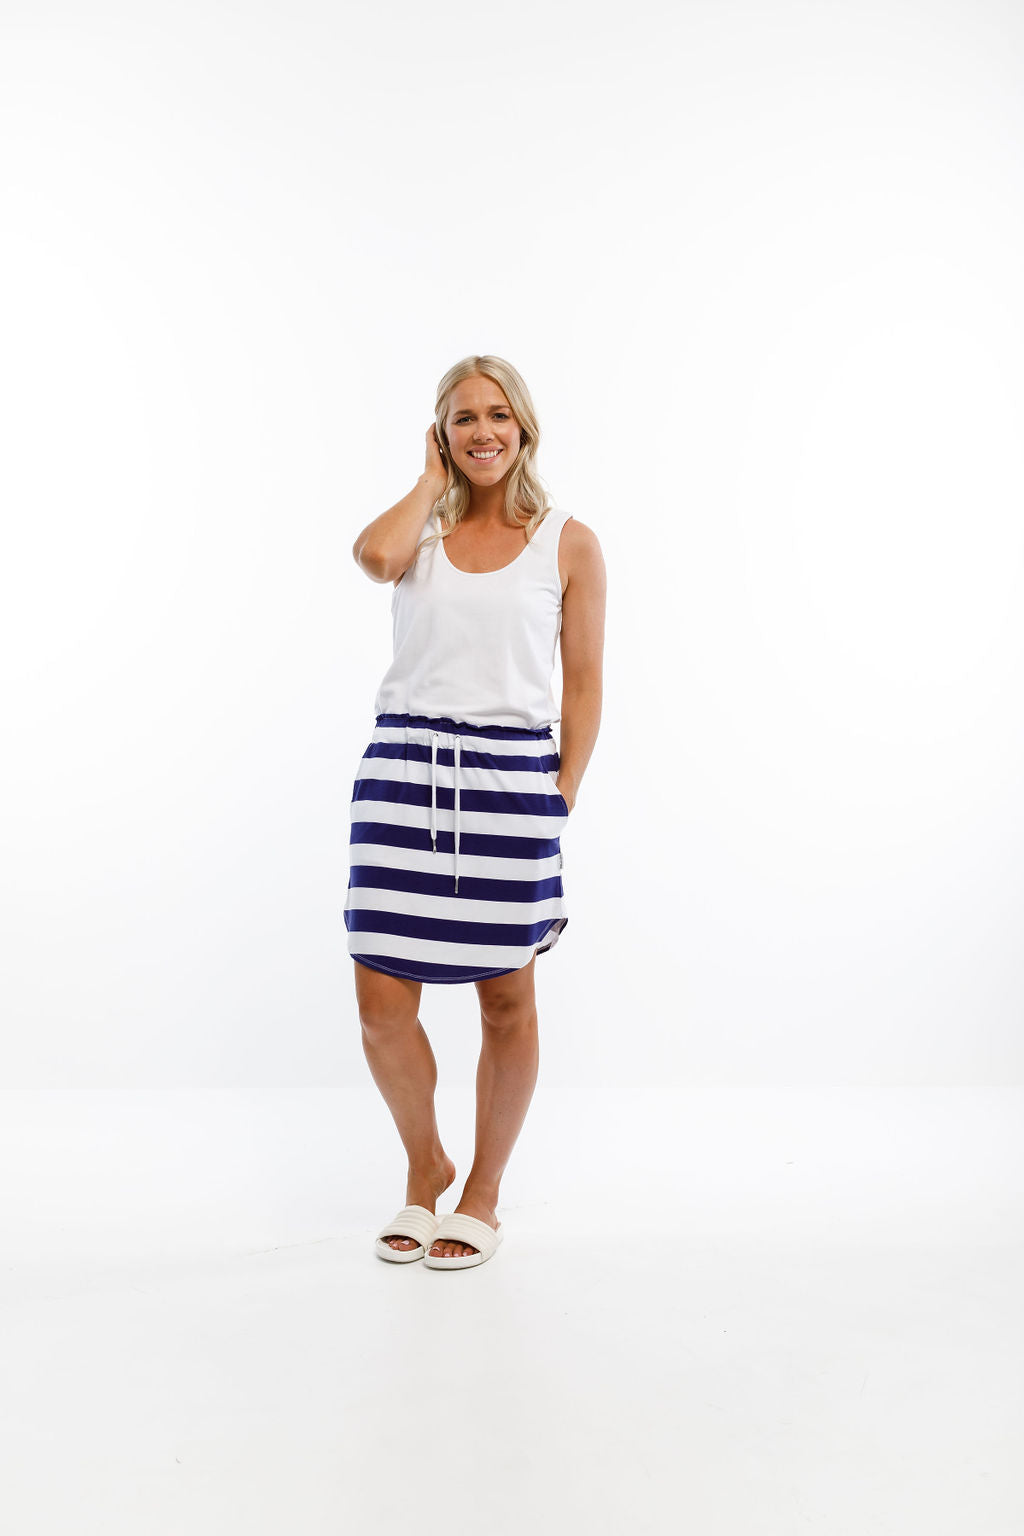 MINI SKIRT - Navy & White Stripes